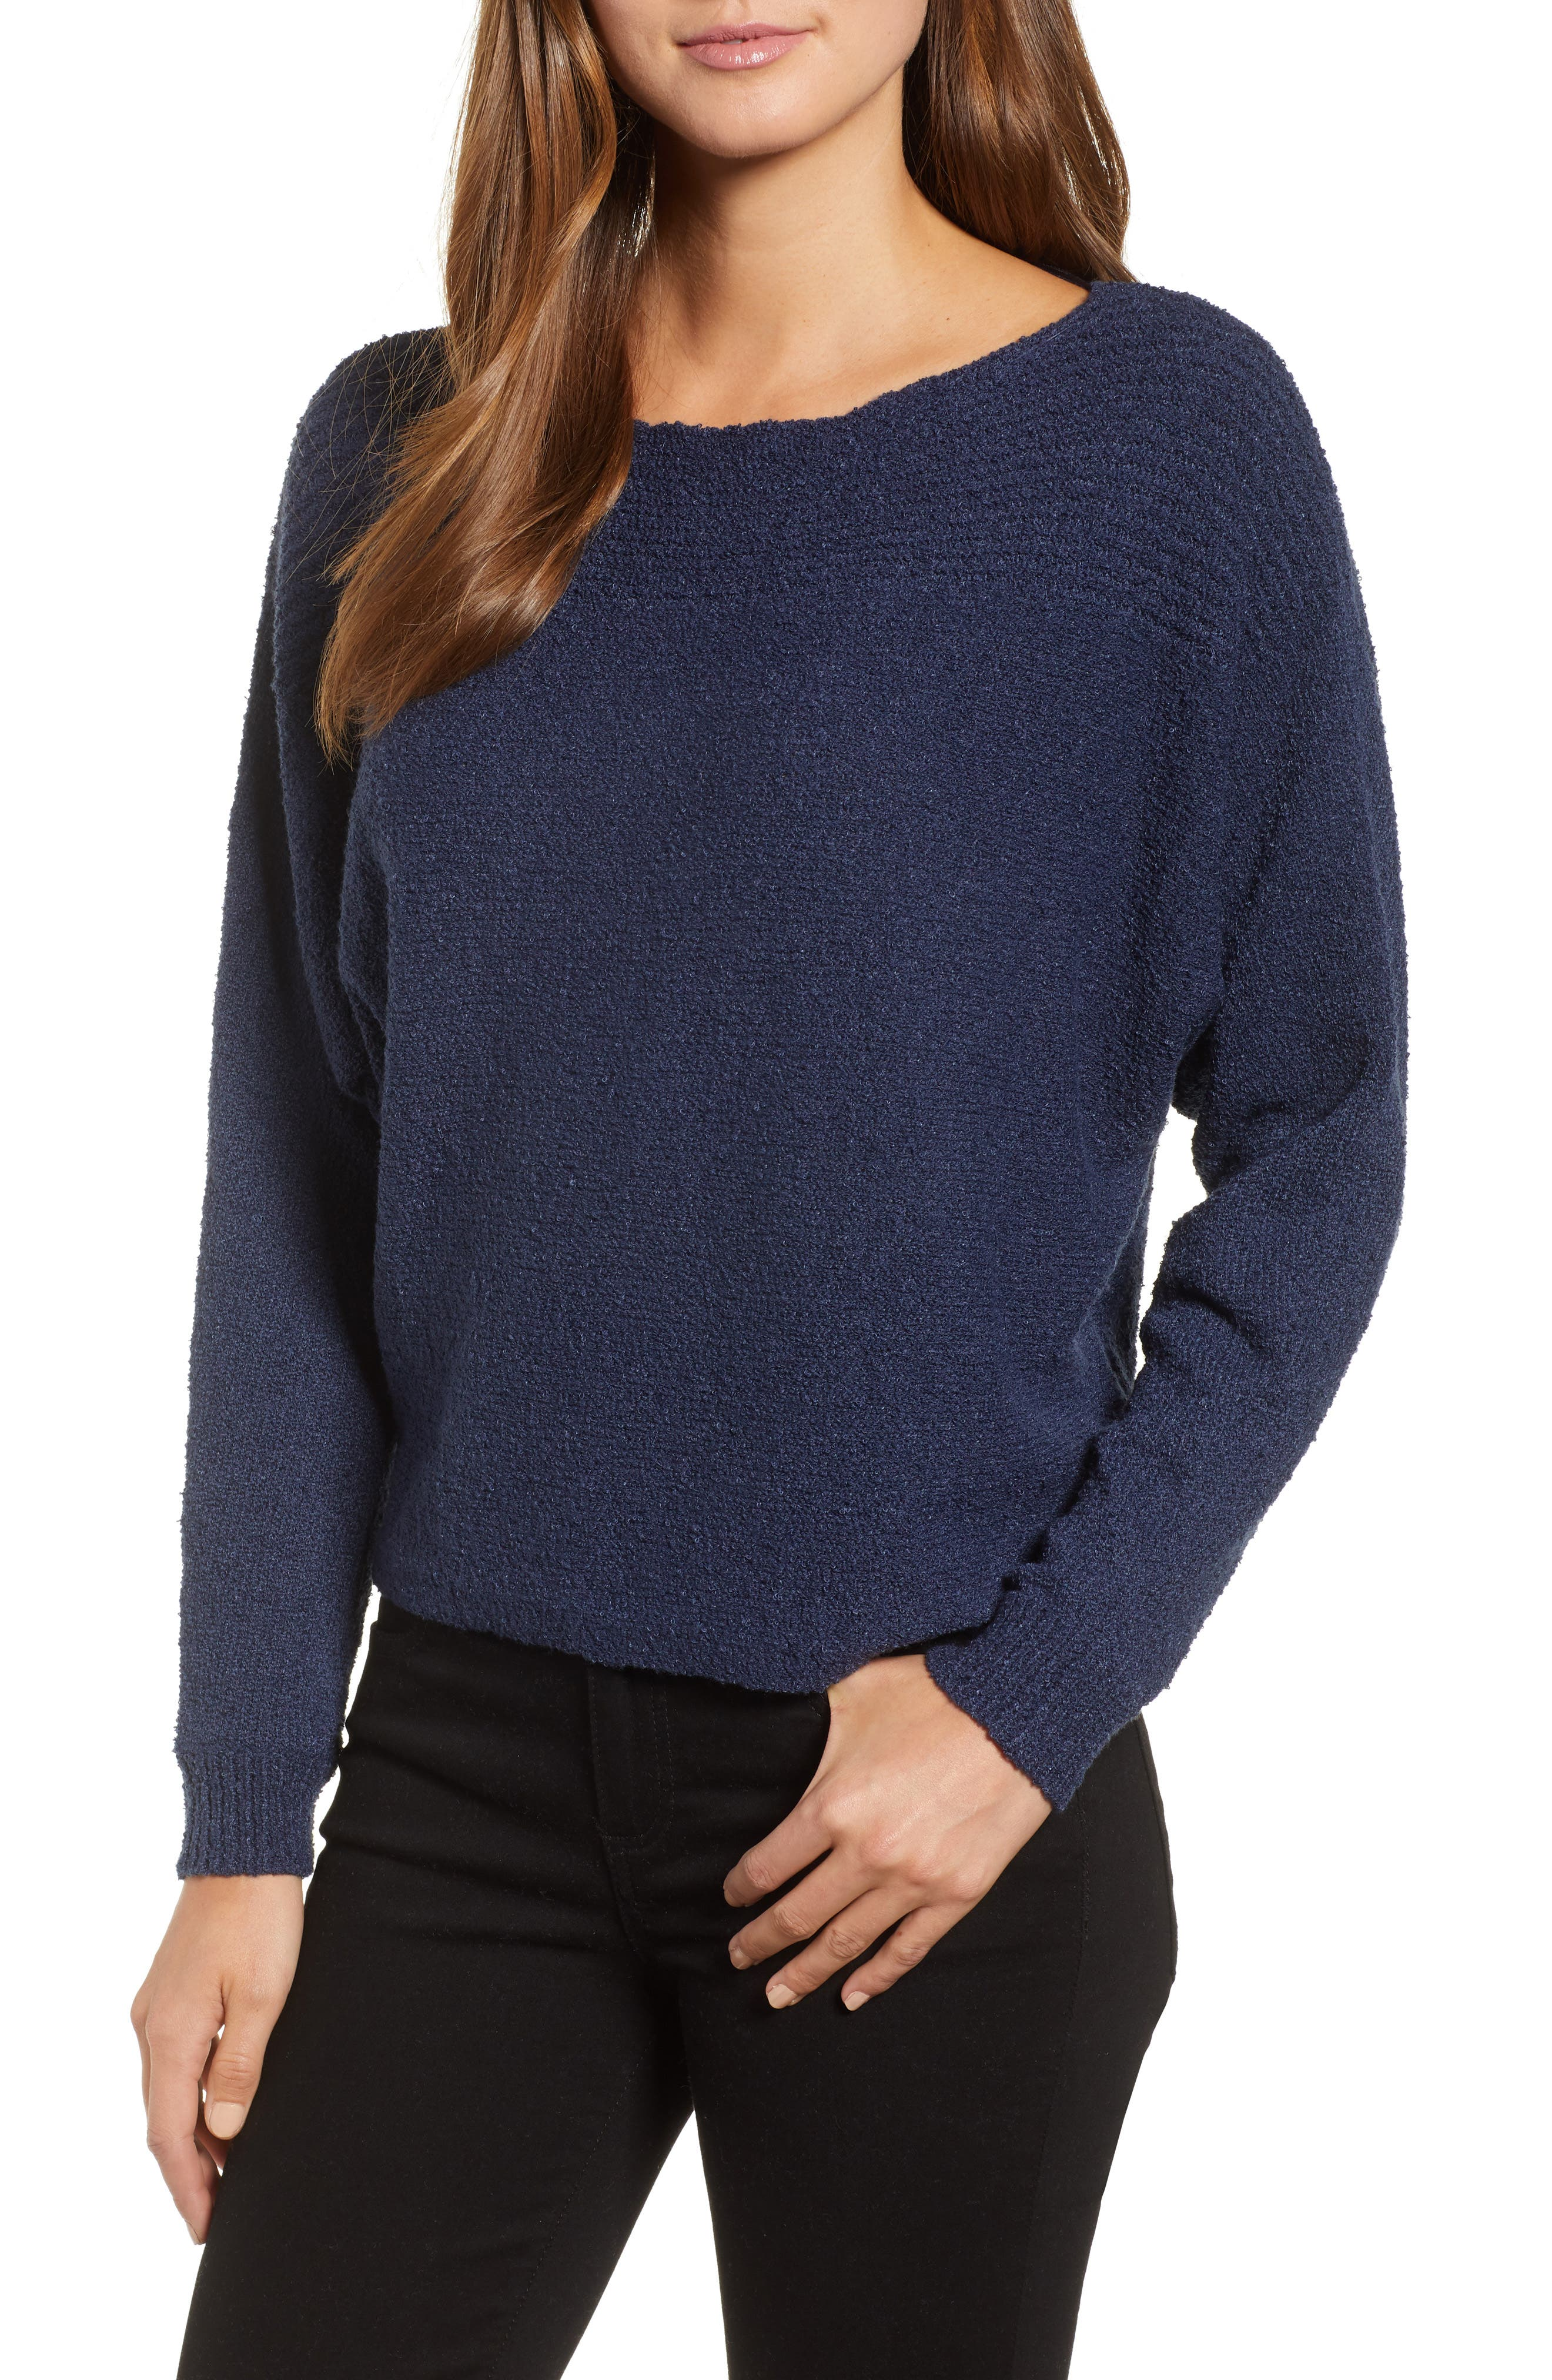 Calson<sup>®</sup> Dolman Sleeve Sweater,                         Main,                         color, 410